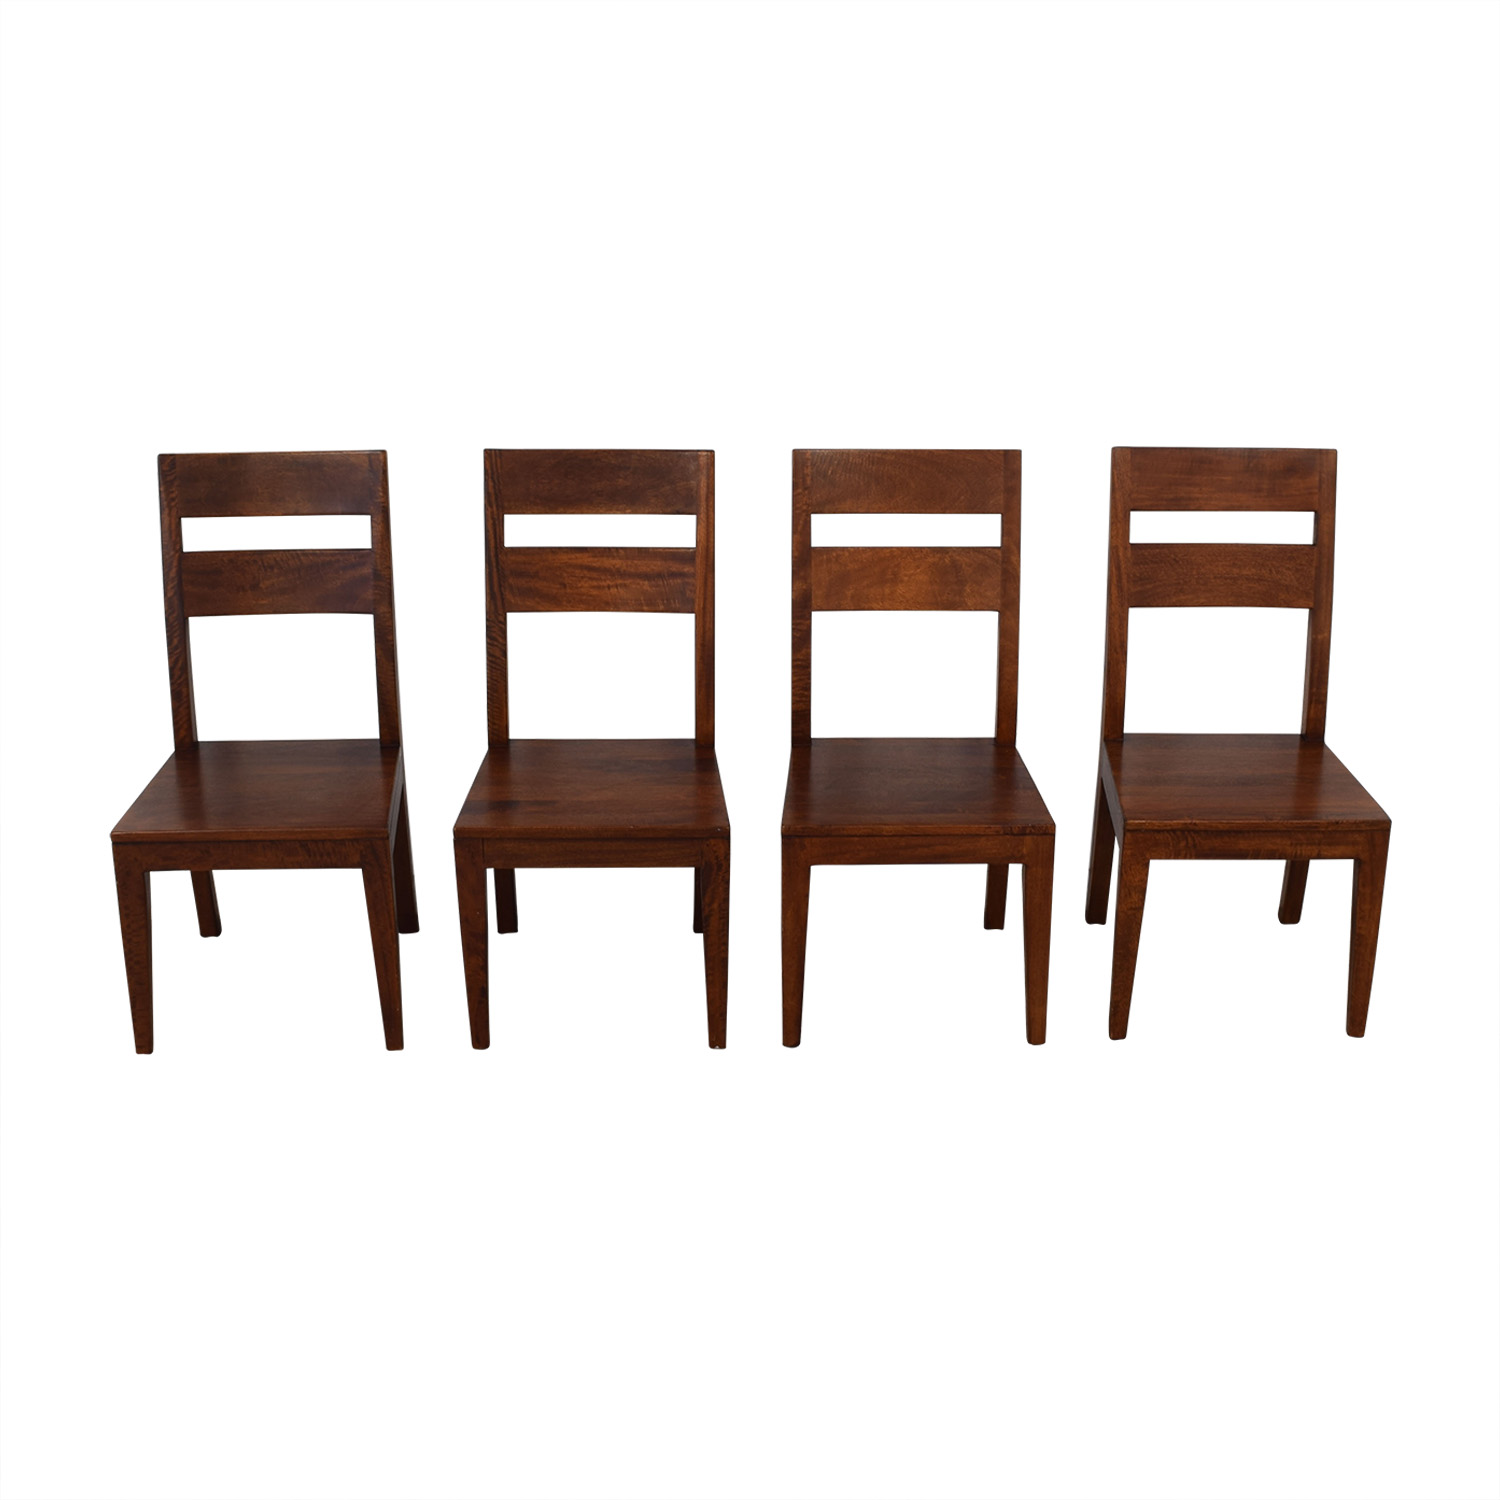 Crate & Barrel Crate & Barrel Basque Chairs Dining Chairs